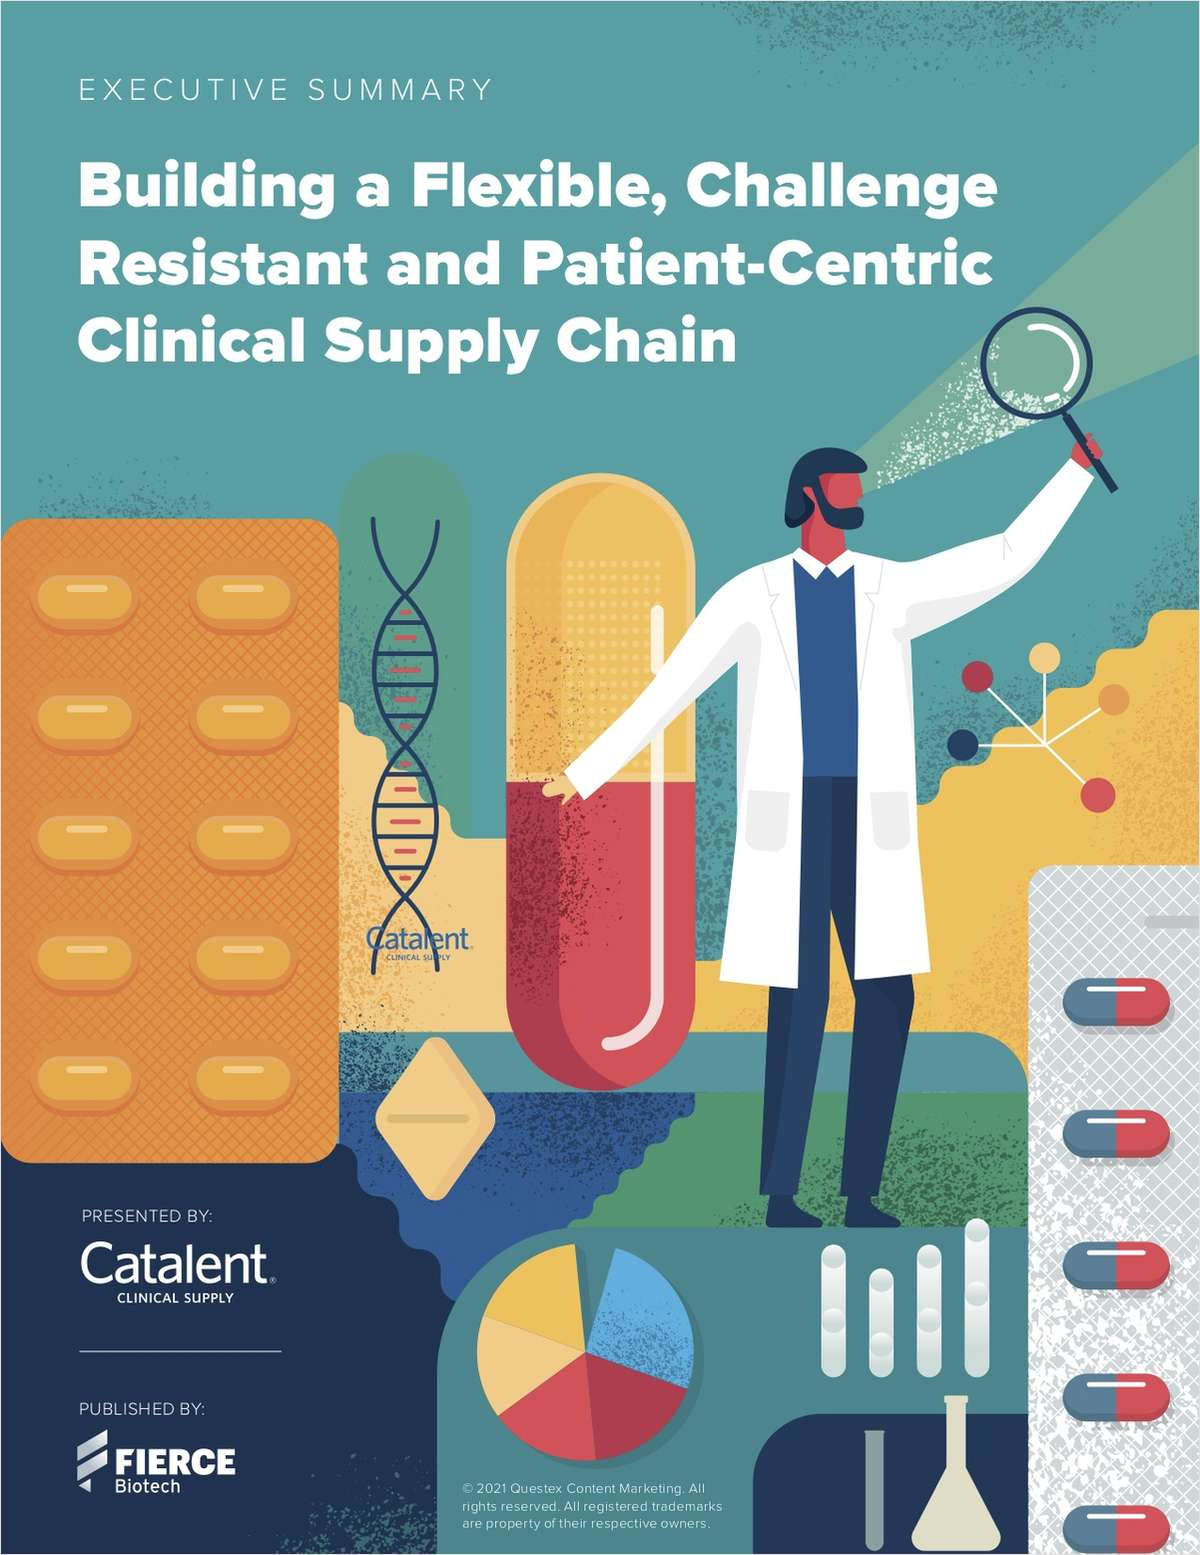 Building a Flexible, Challenge Resistant and Patient-Centric Clinical Supply Chain